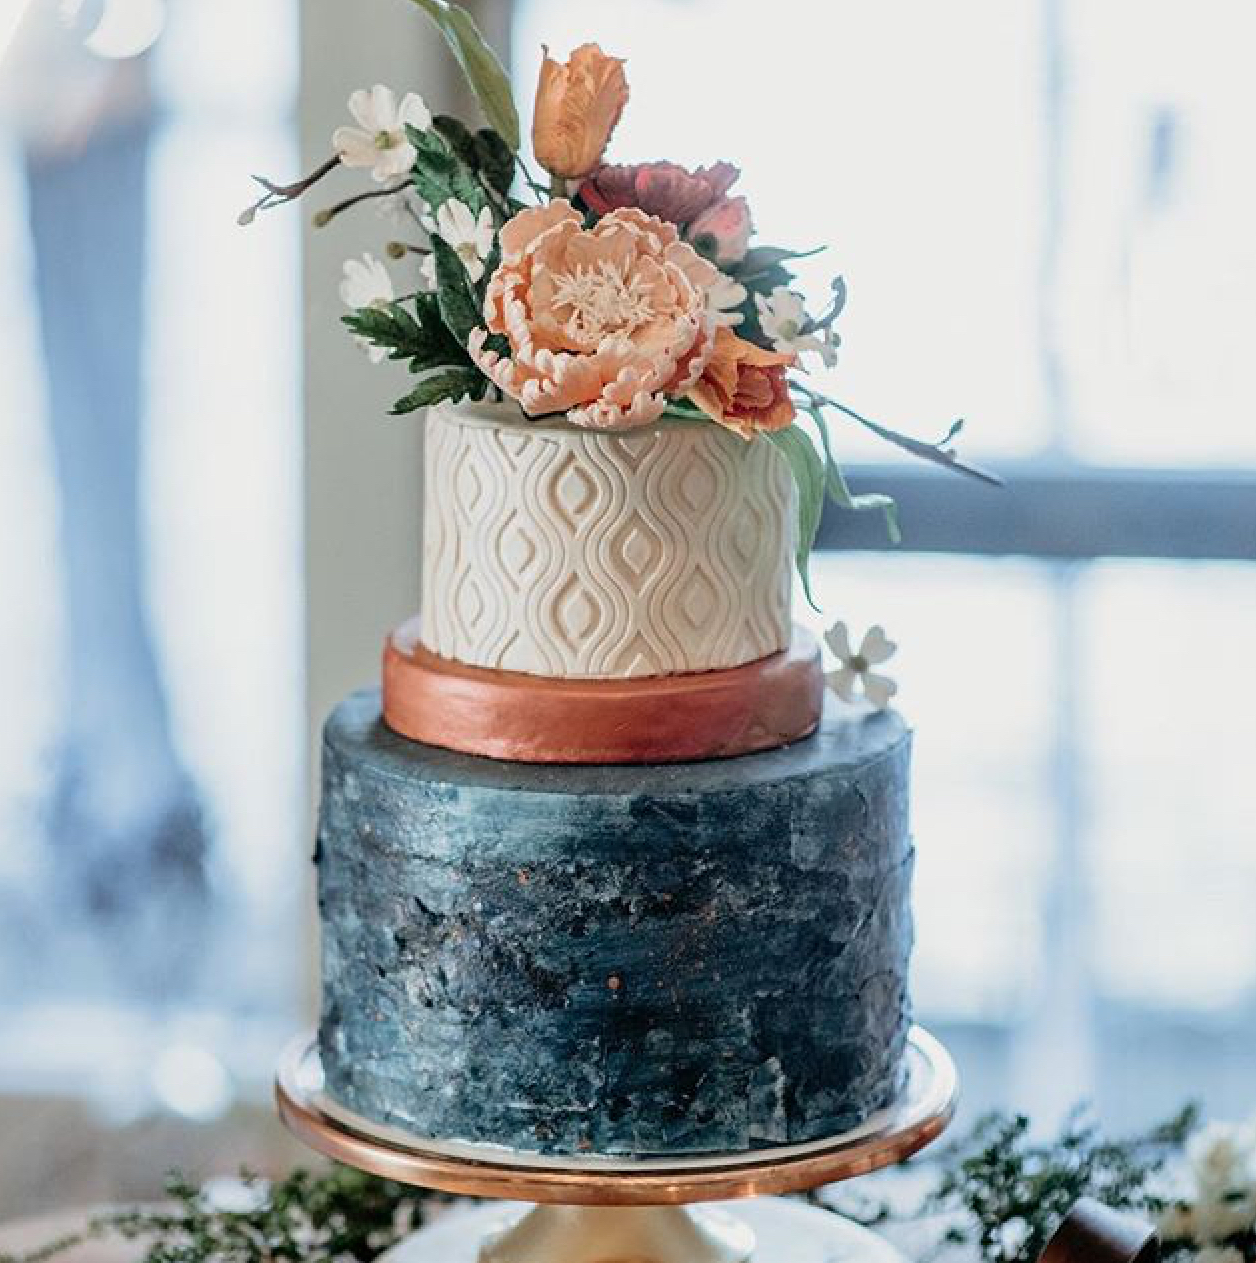 Black and white fondant wedding cake with copper tones